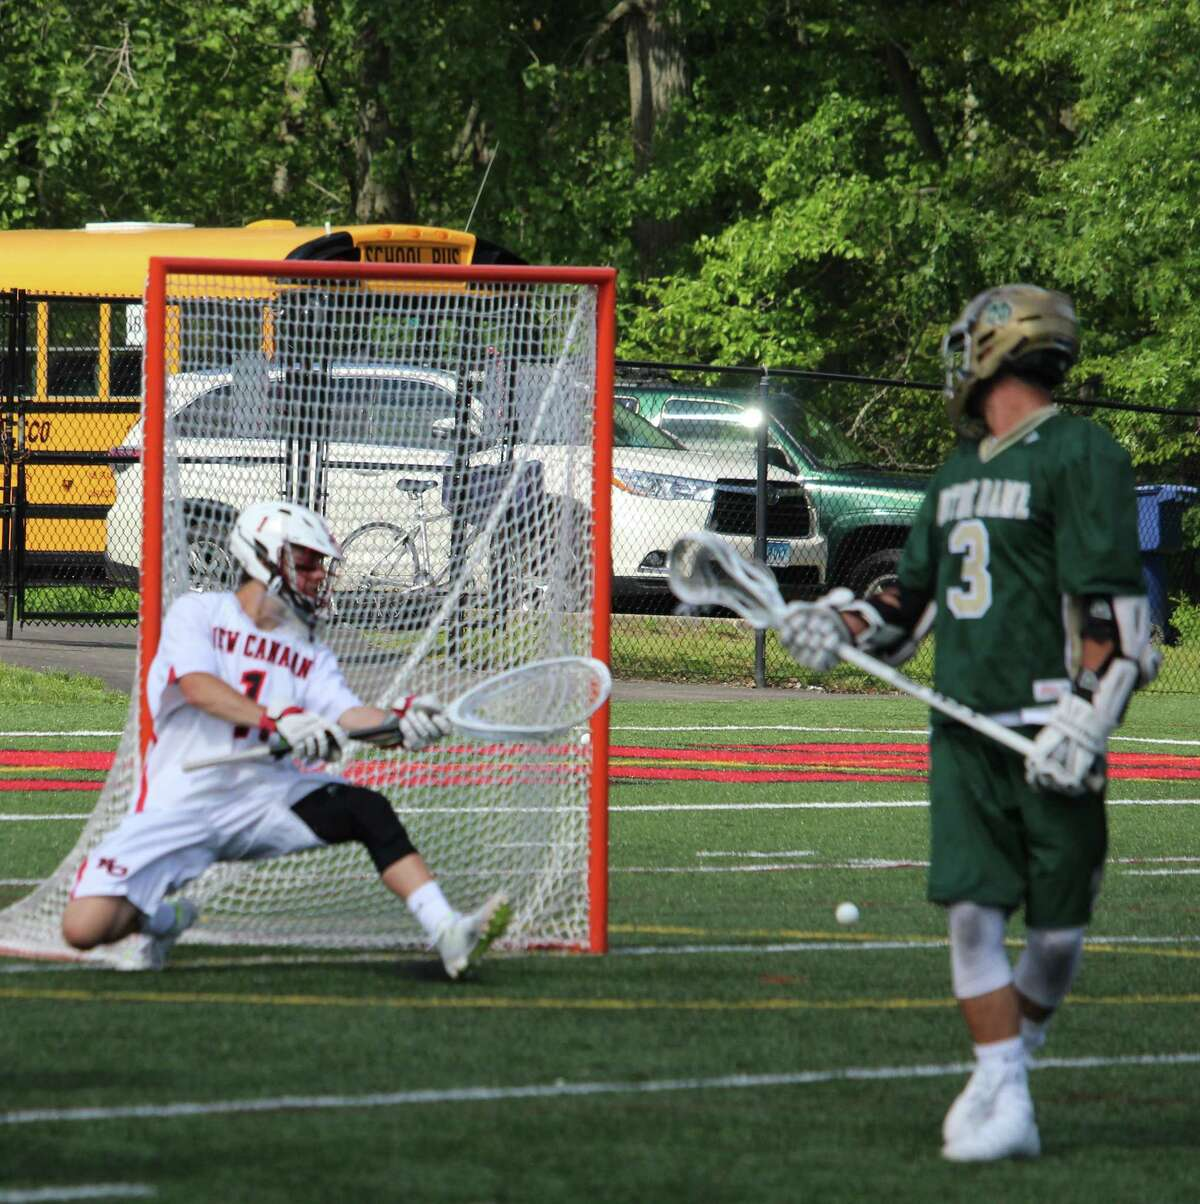 New Canaan goalie Drew Morris knocks away a shot during the Class M lacrosse quarterfinals between New Canaan and Notre Dame-West Haven on Saturday at New Canaan High School. New Canaan defeated Notre Dame-West Haven 16-3.